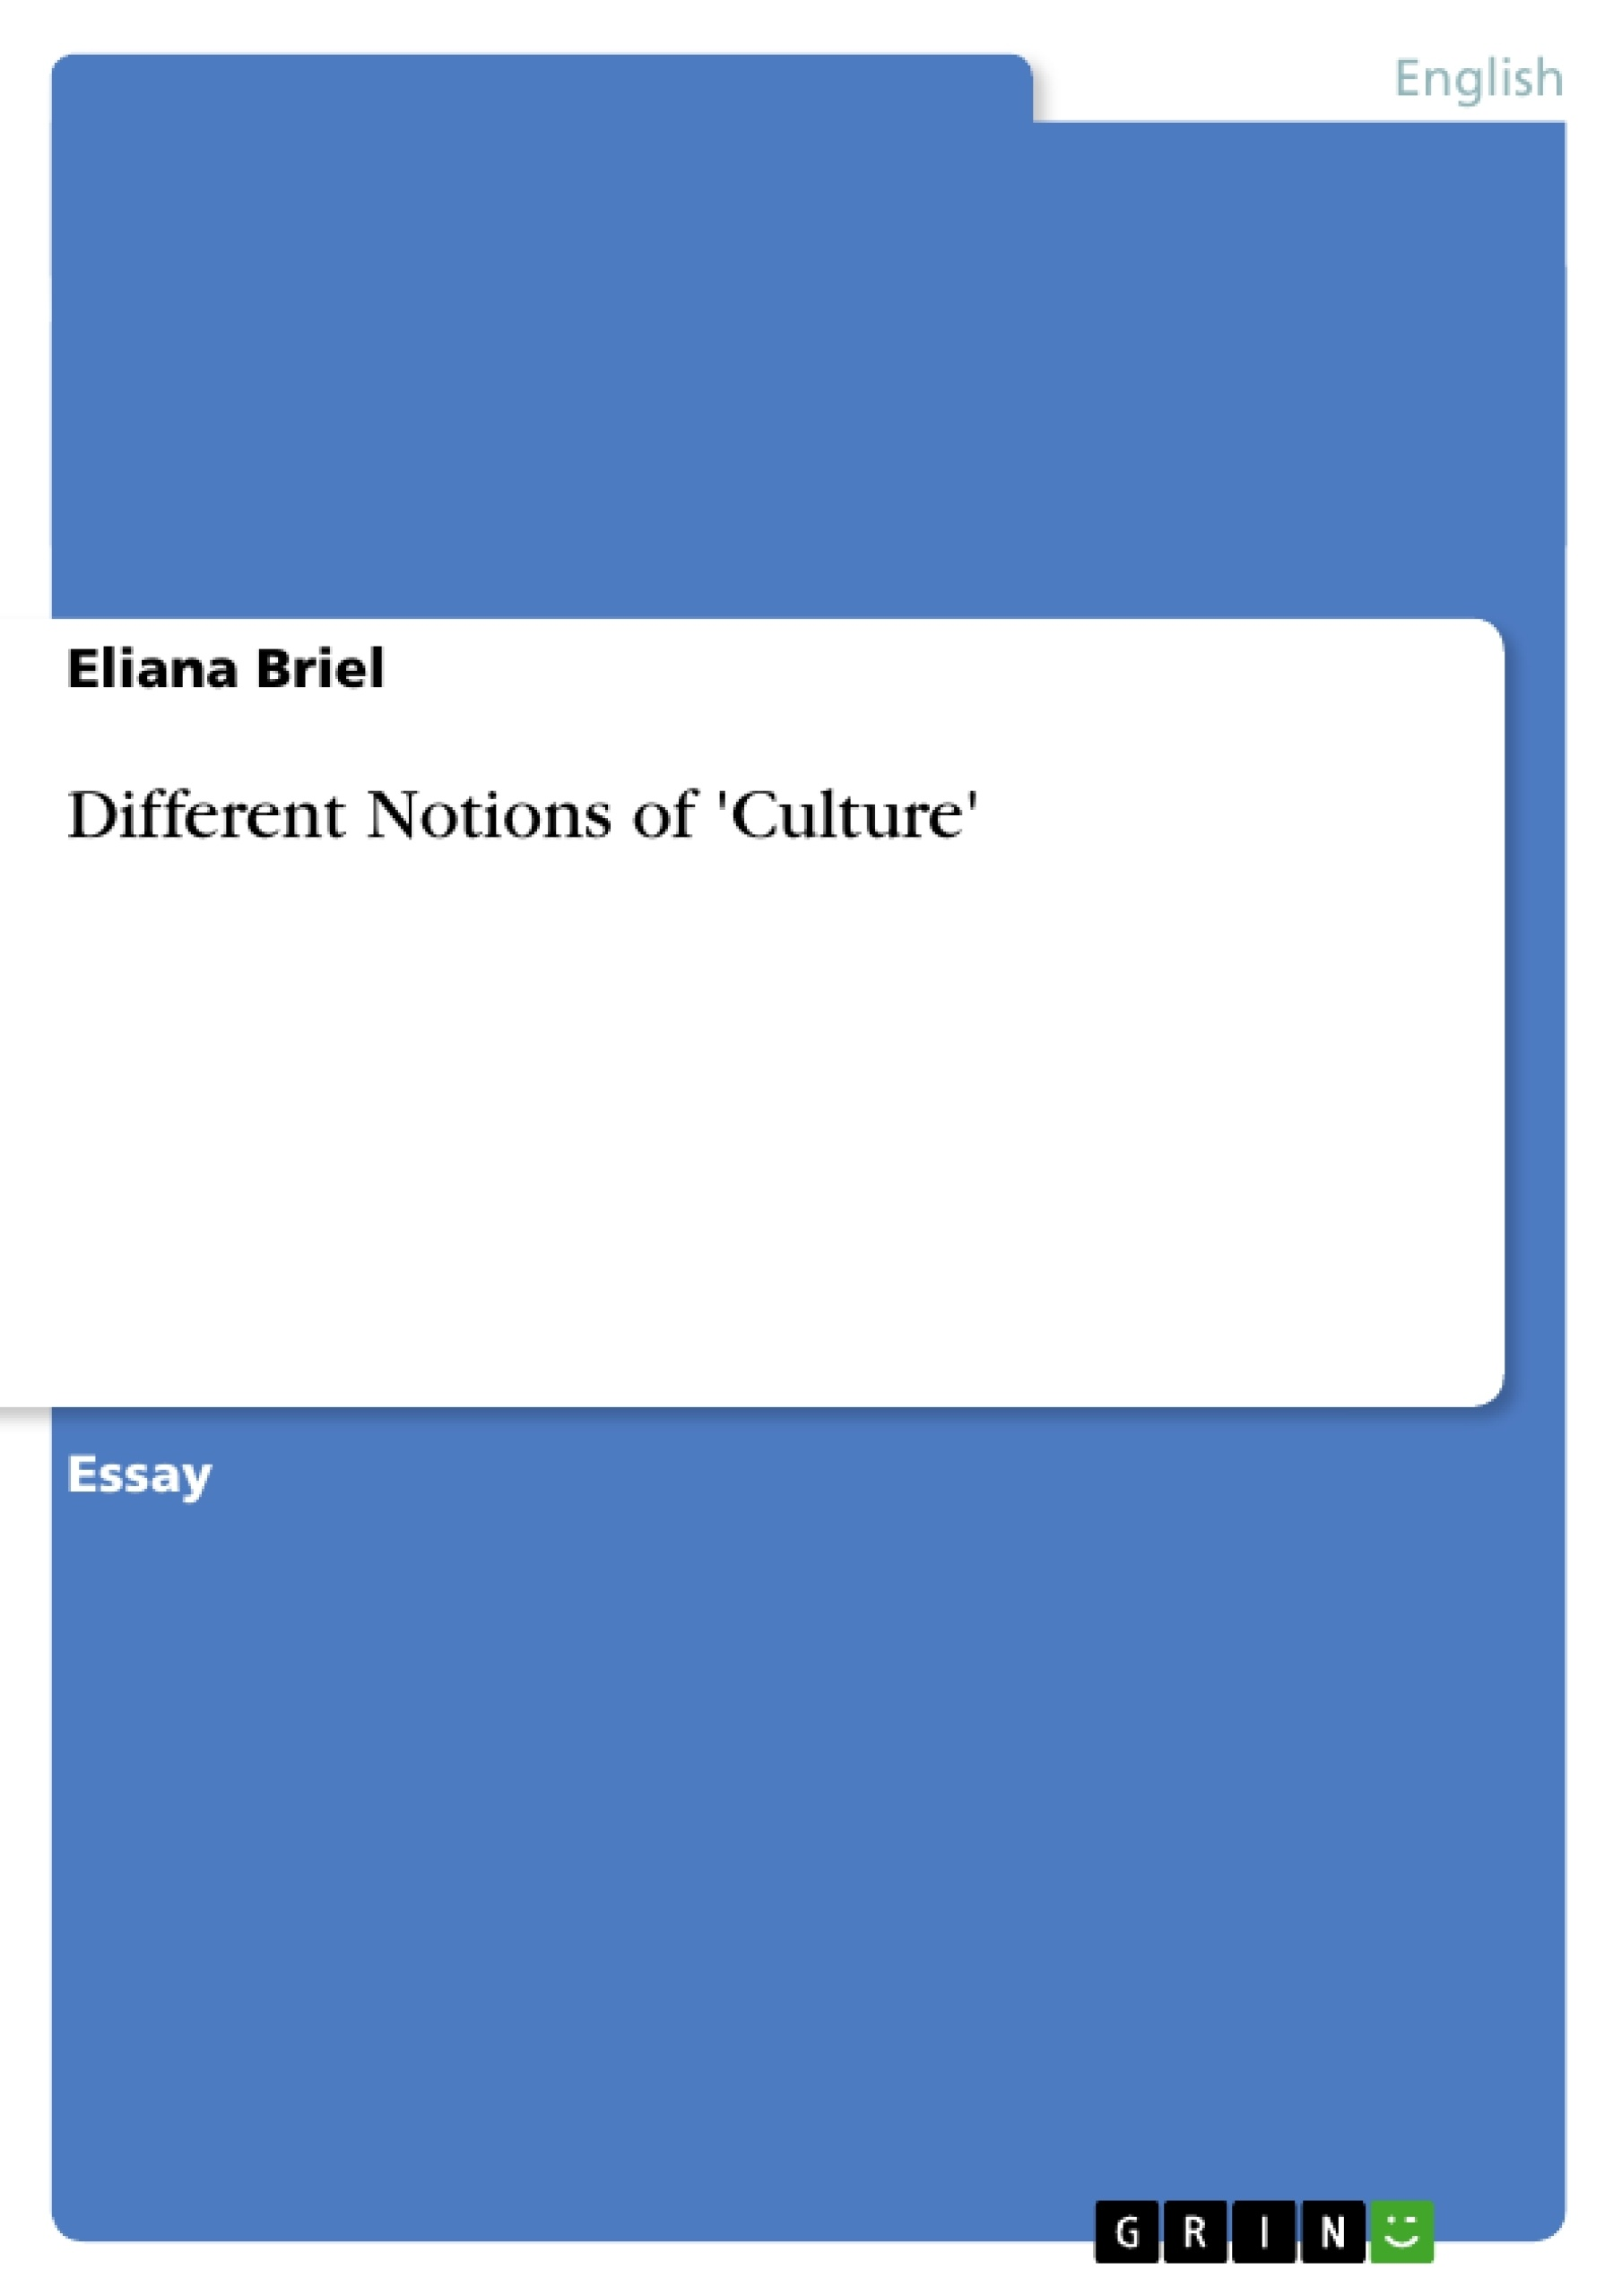 Title: Different Notions of 'Culture'